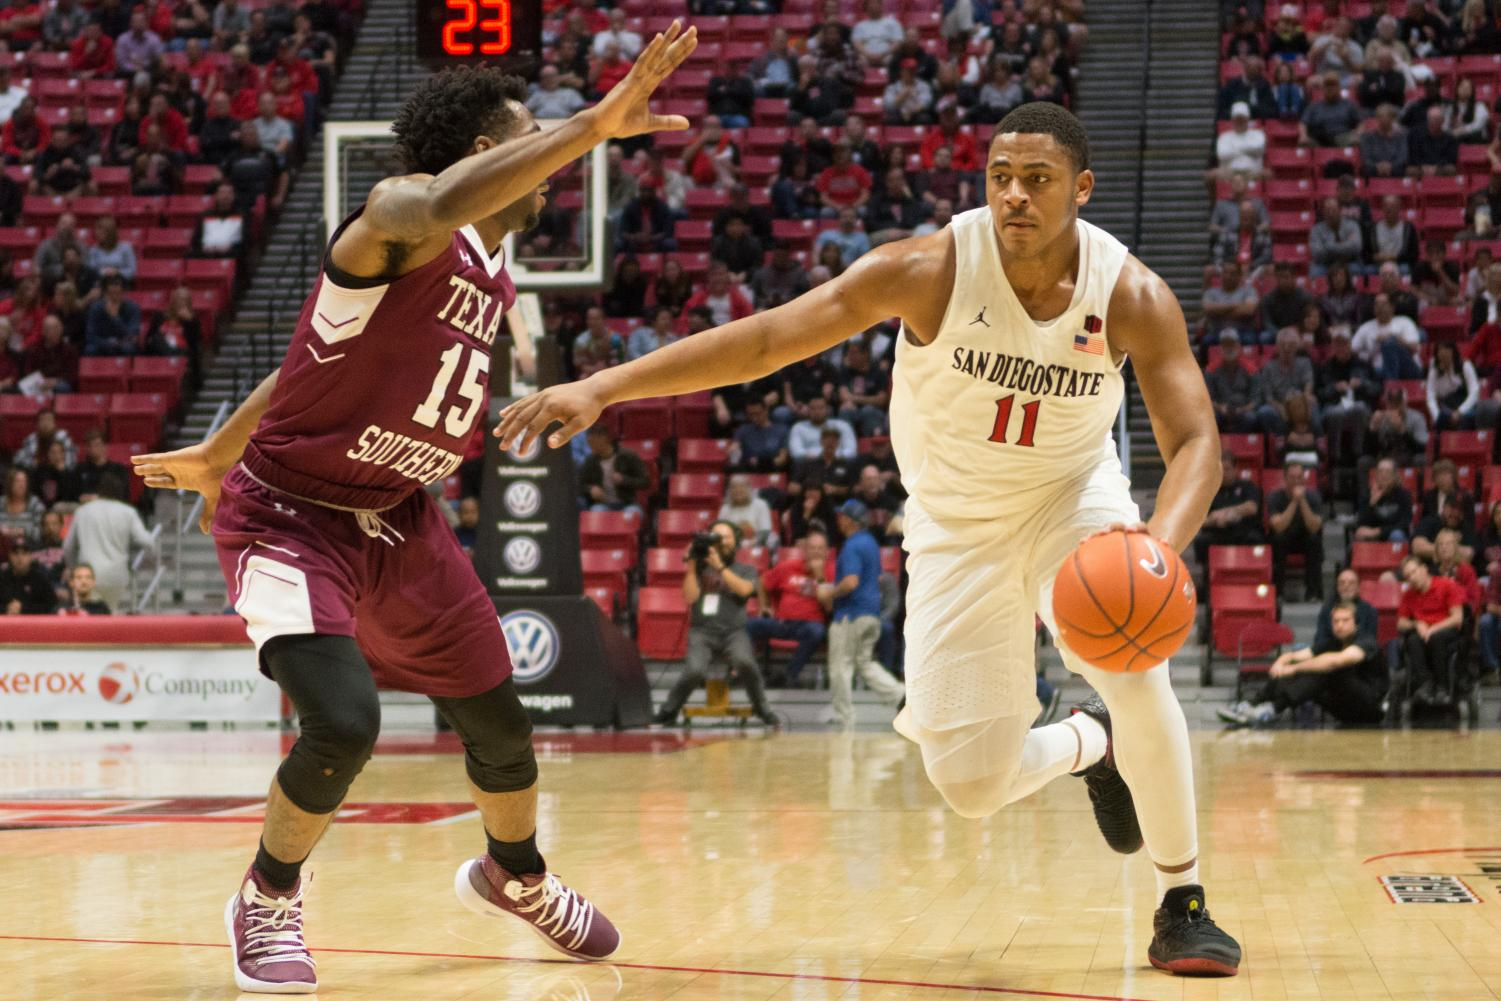 Sophomore forward Matt Mitchell drives around redshirt sophomore forward Justin Hopkins during the Aztecs 103-64 victory over Texas Southern on Nov. 14 at Viejas Arena.